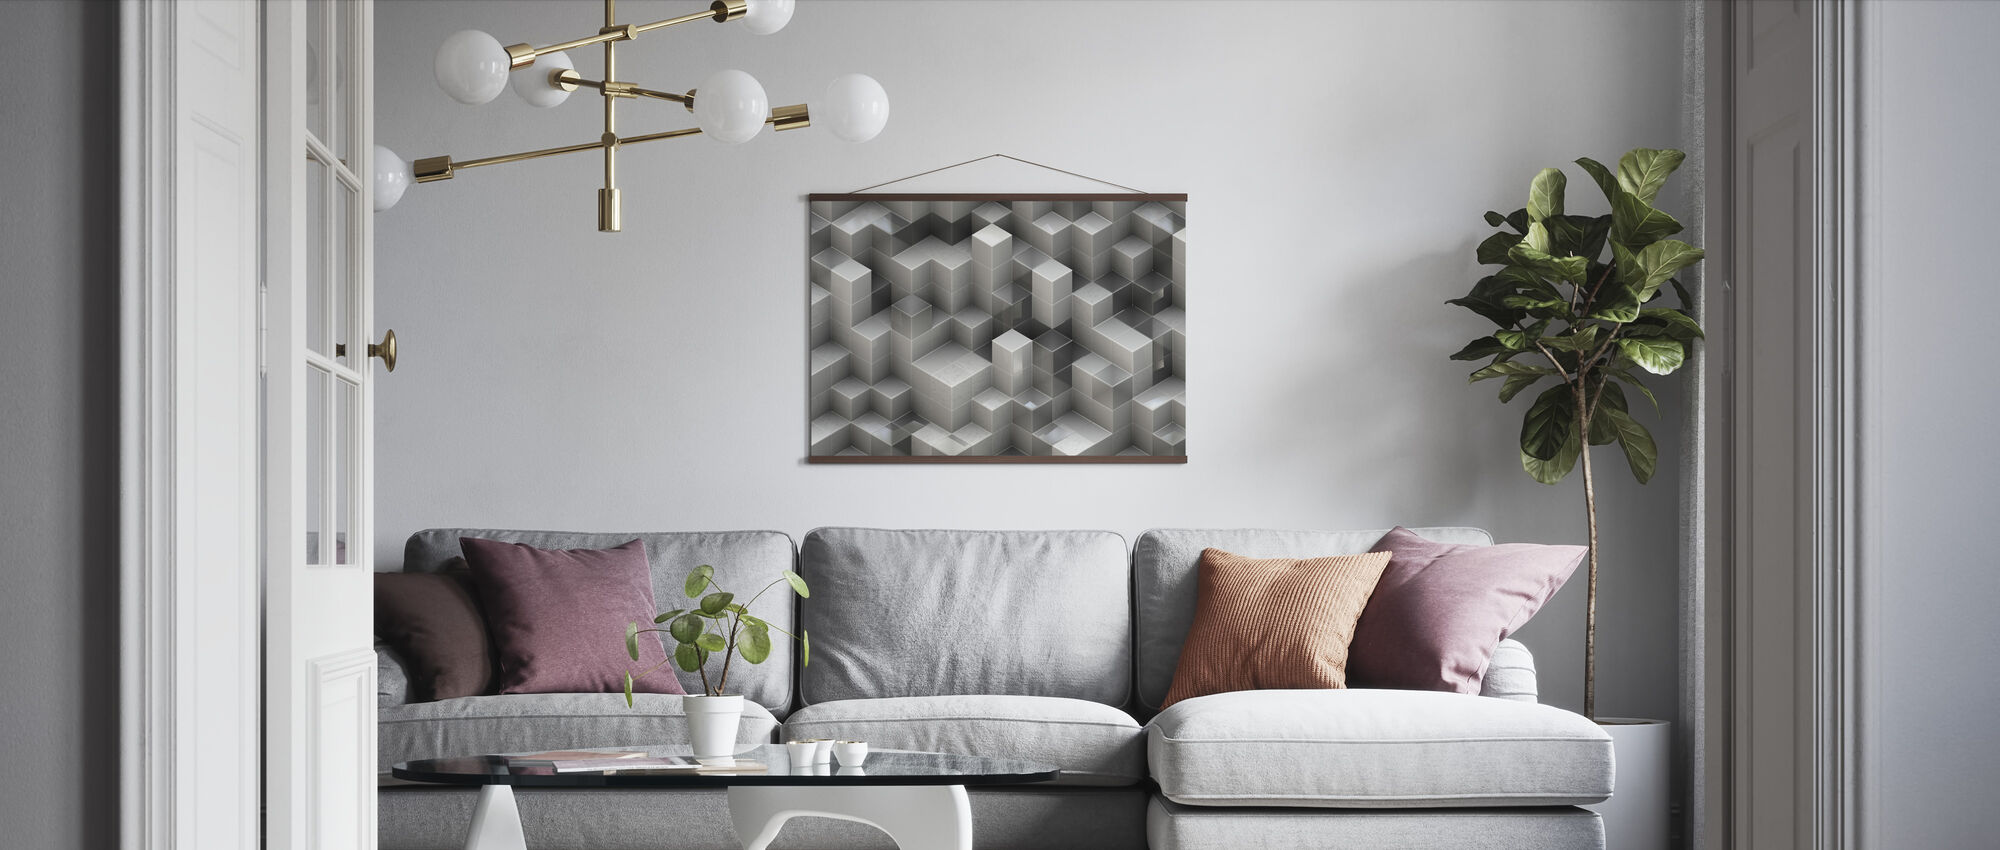 3D Construction - Poster - Living Room